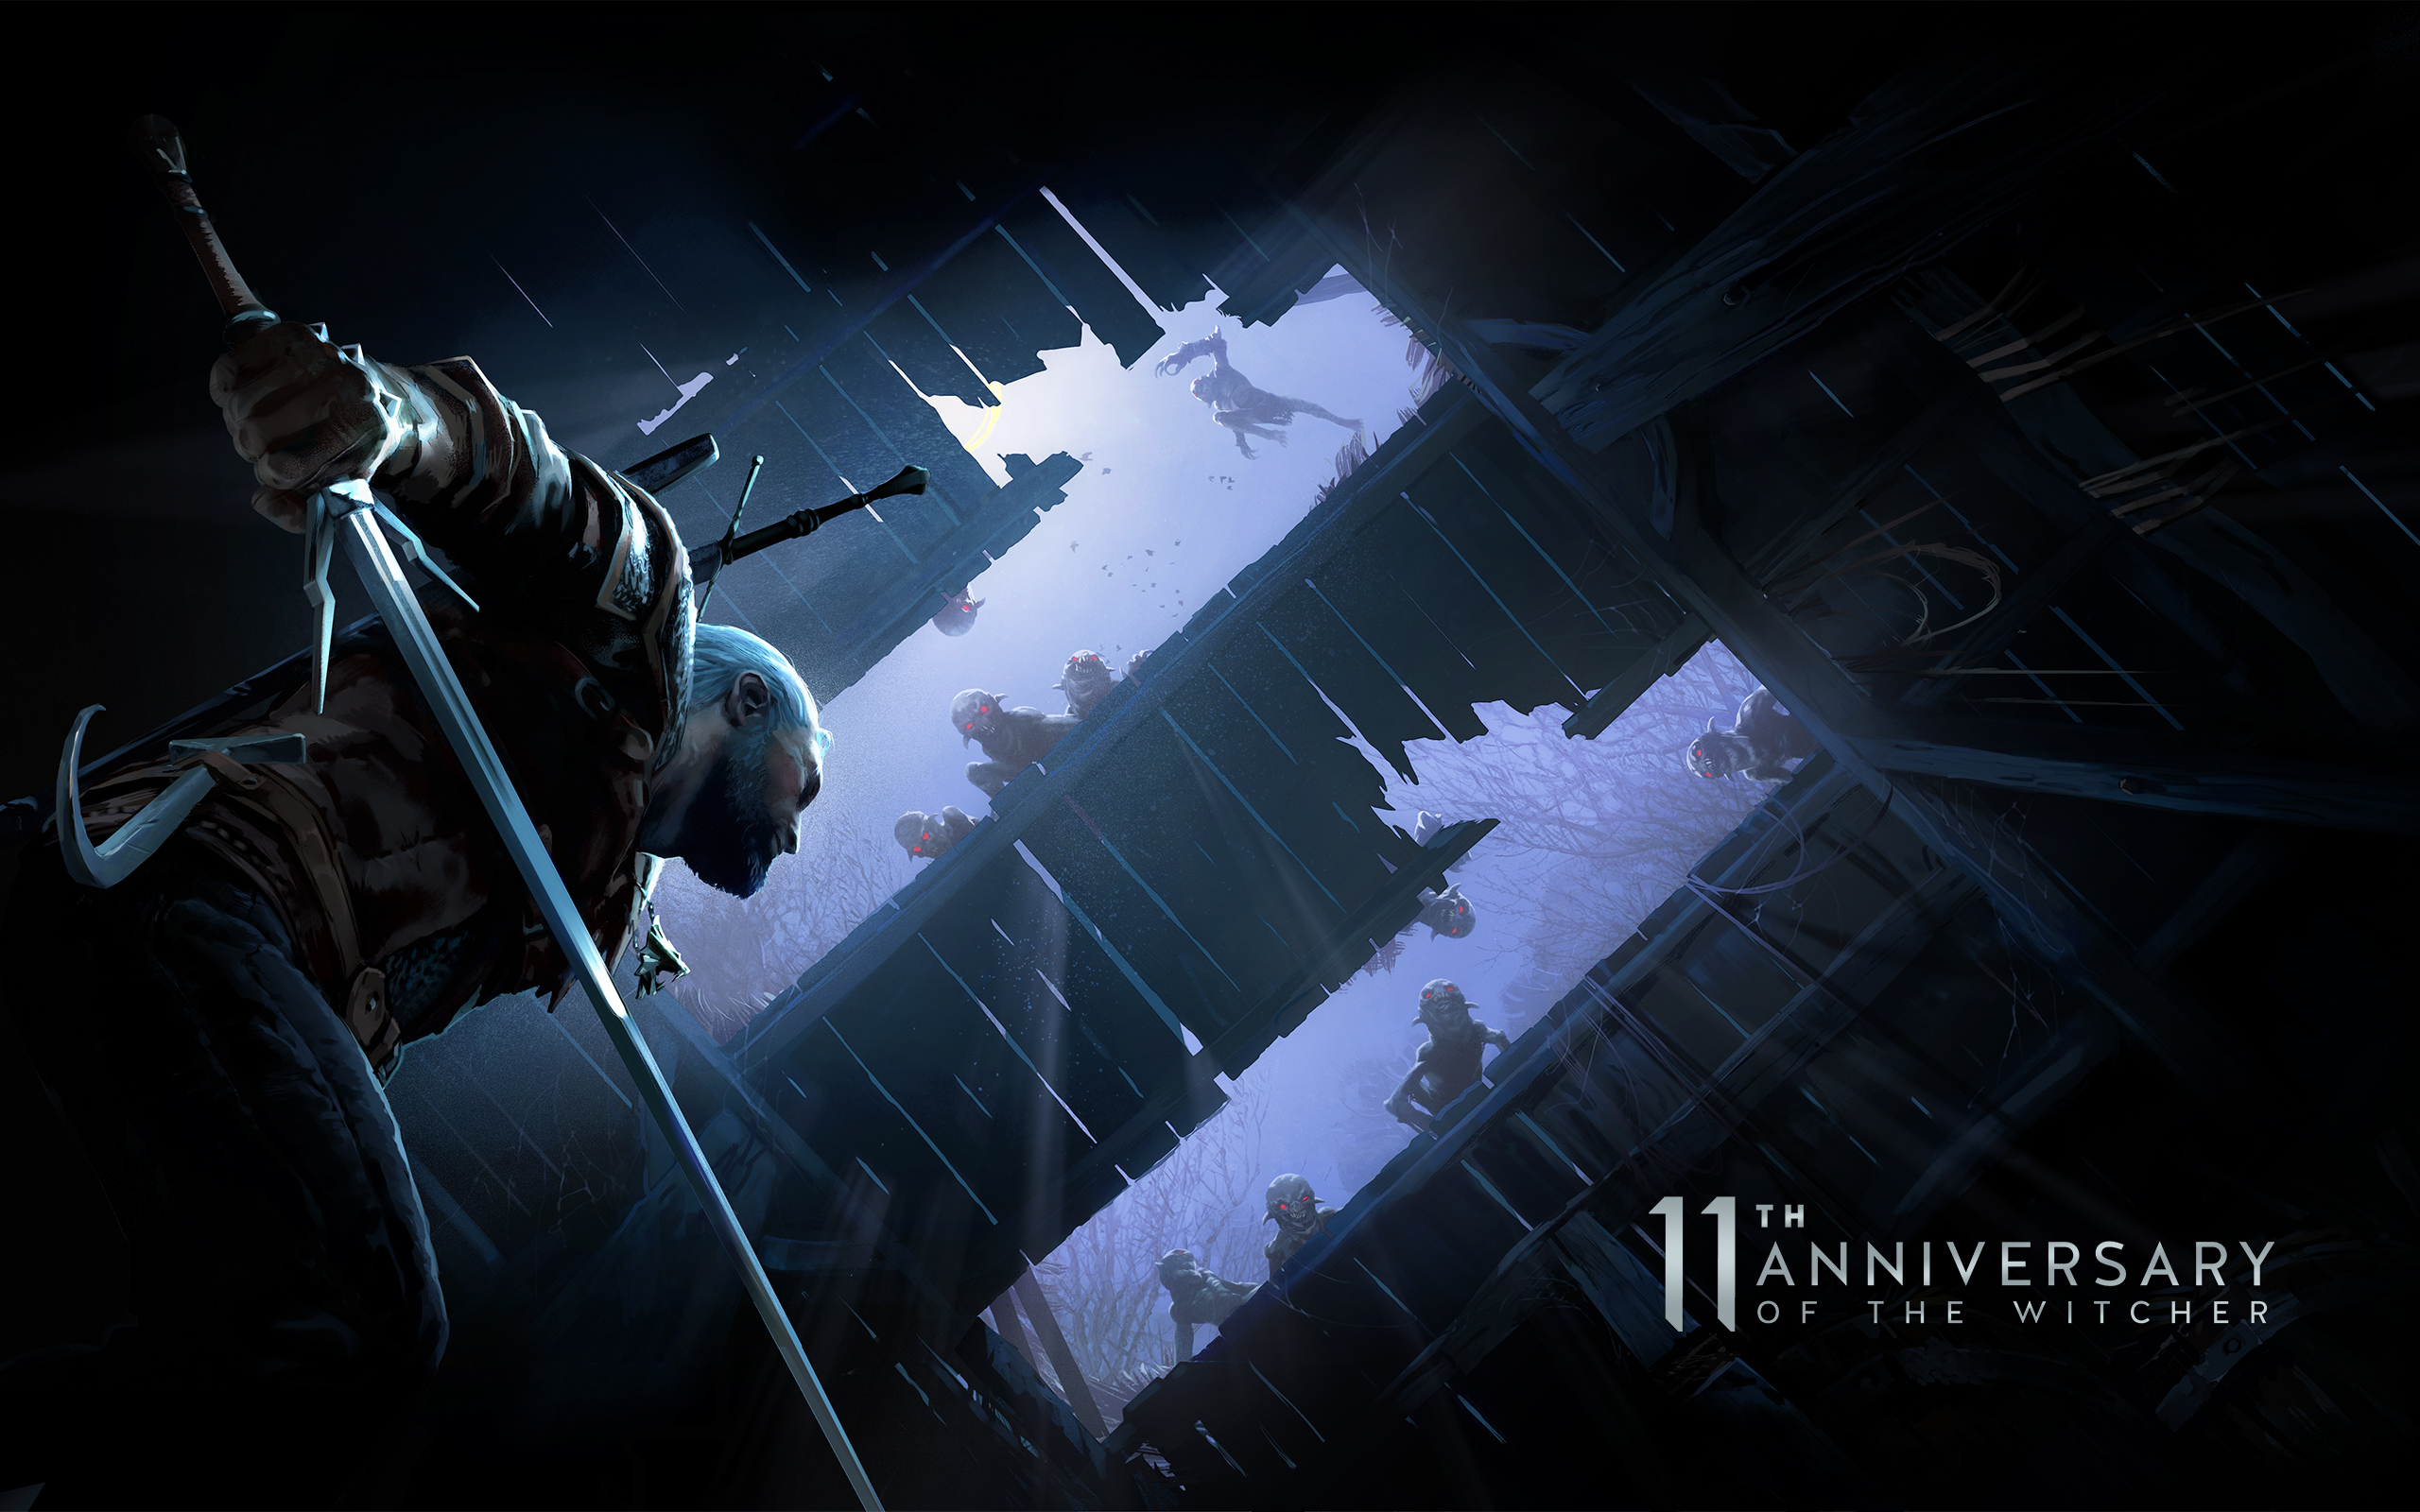 Witcher 11th anniversary wallpapers   CD PROJEKT RED 2560x1600